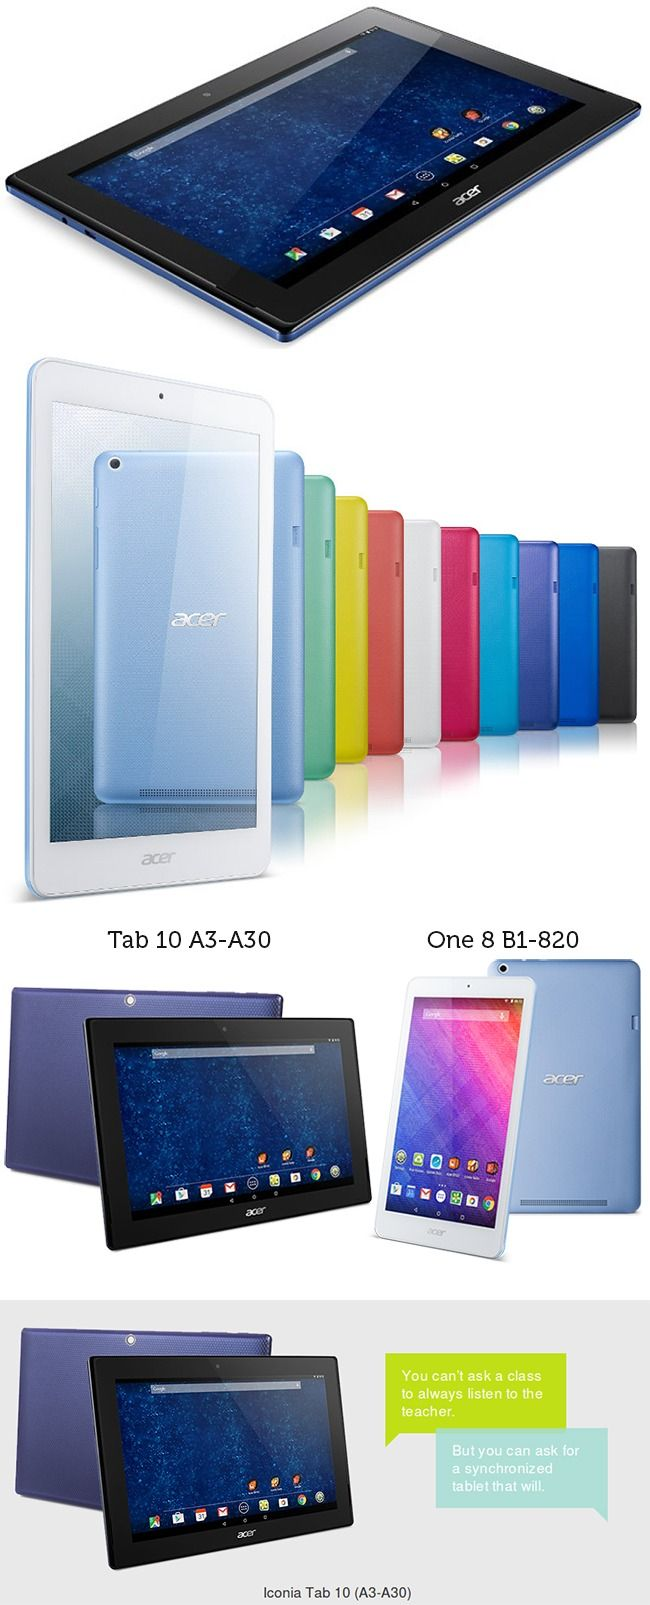 #Acer Iconia #Tab 10 A3-A30 and One 8 B1-820